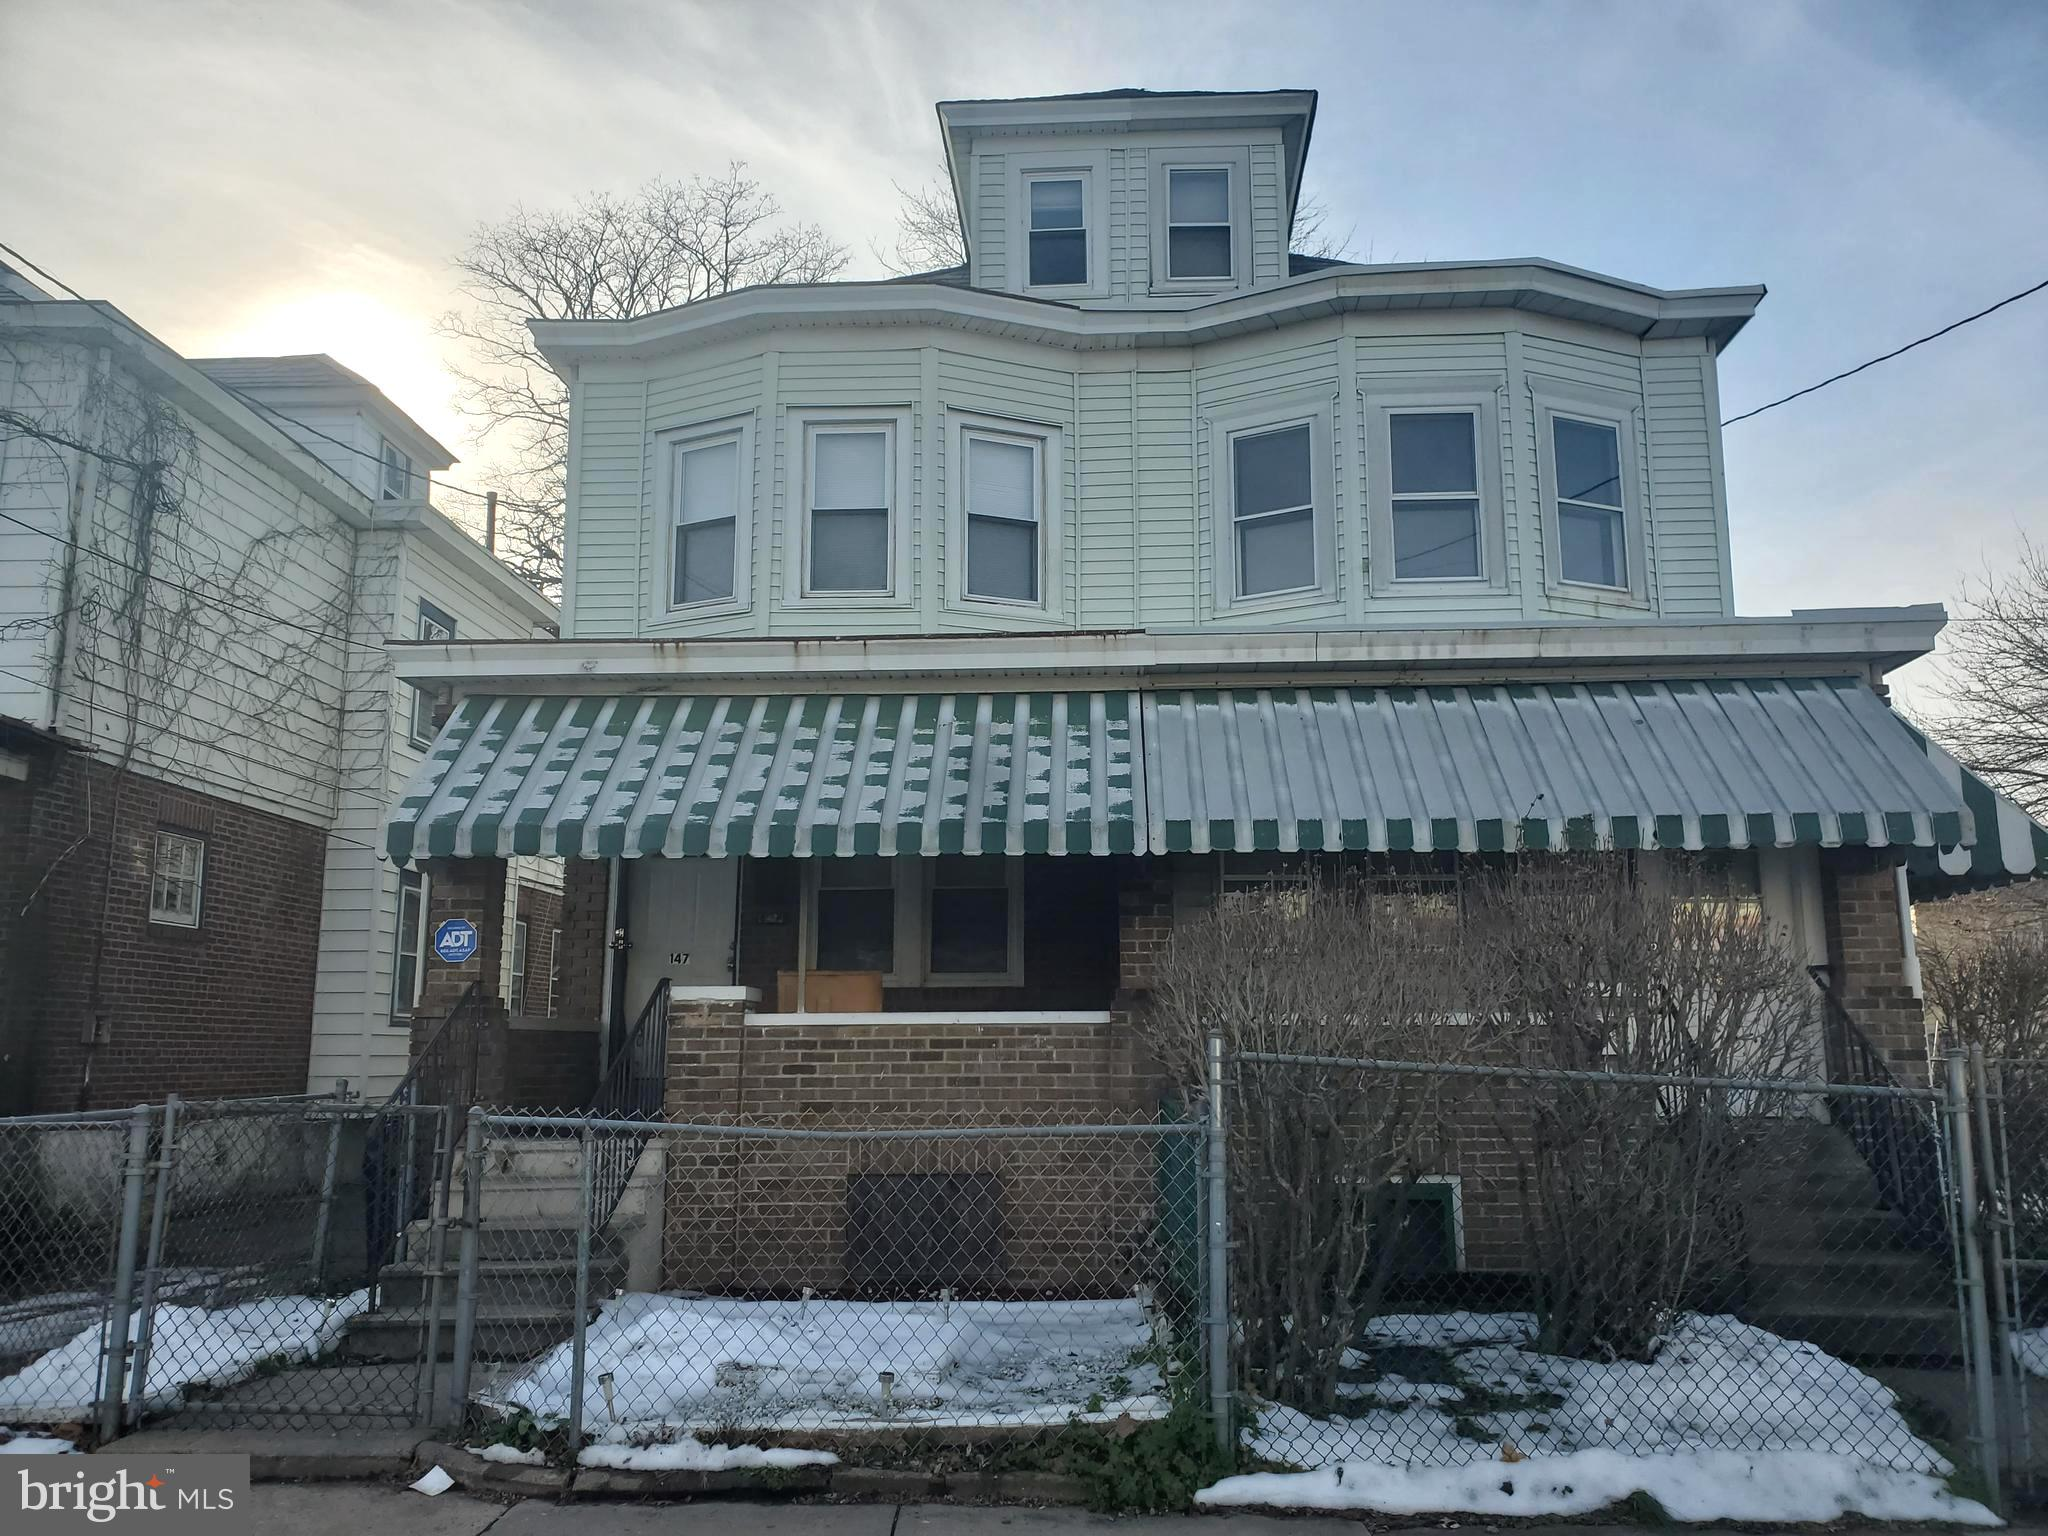 147 S COOK AVENUE, Trenton, New Jersey 08609, 4 Bedrooms Bedrooms, ,1 BathroomBathrooms,Townhouse,For Sale,147 S COOK AVENUE,NJME306192